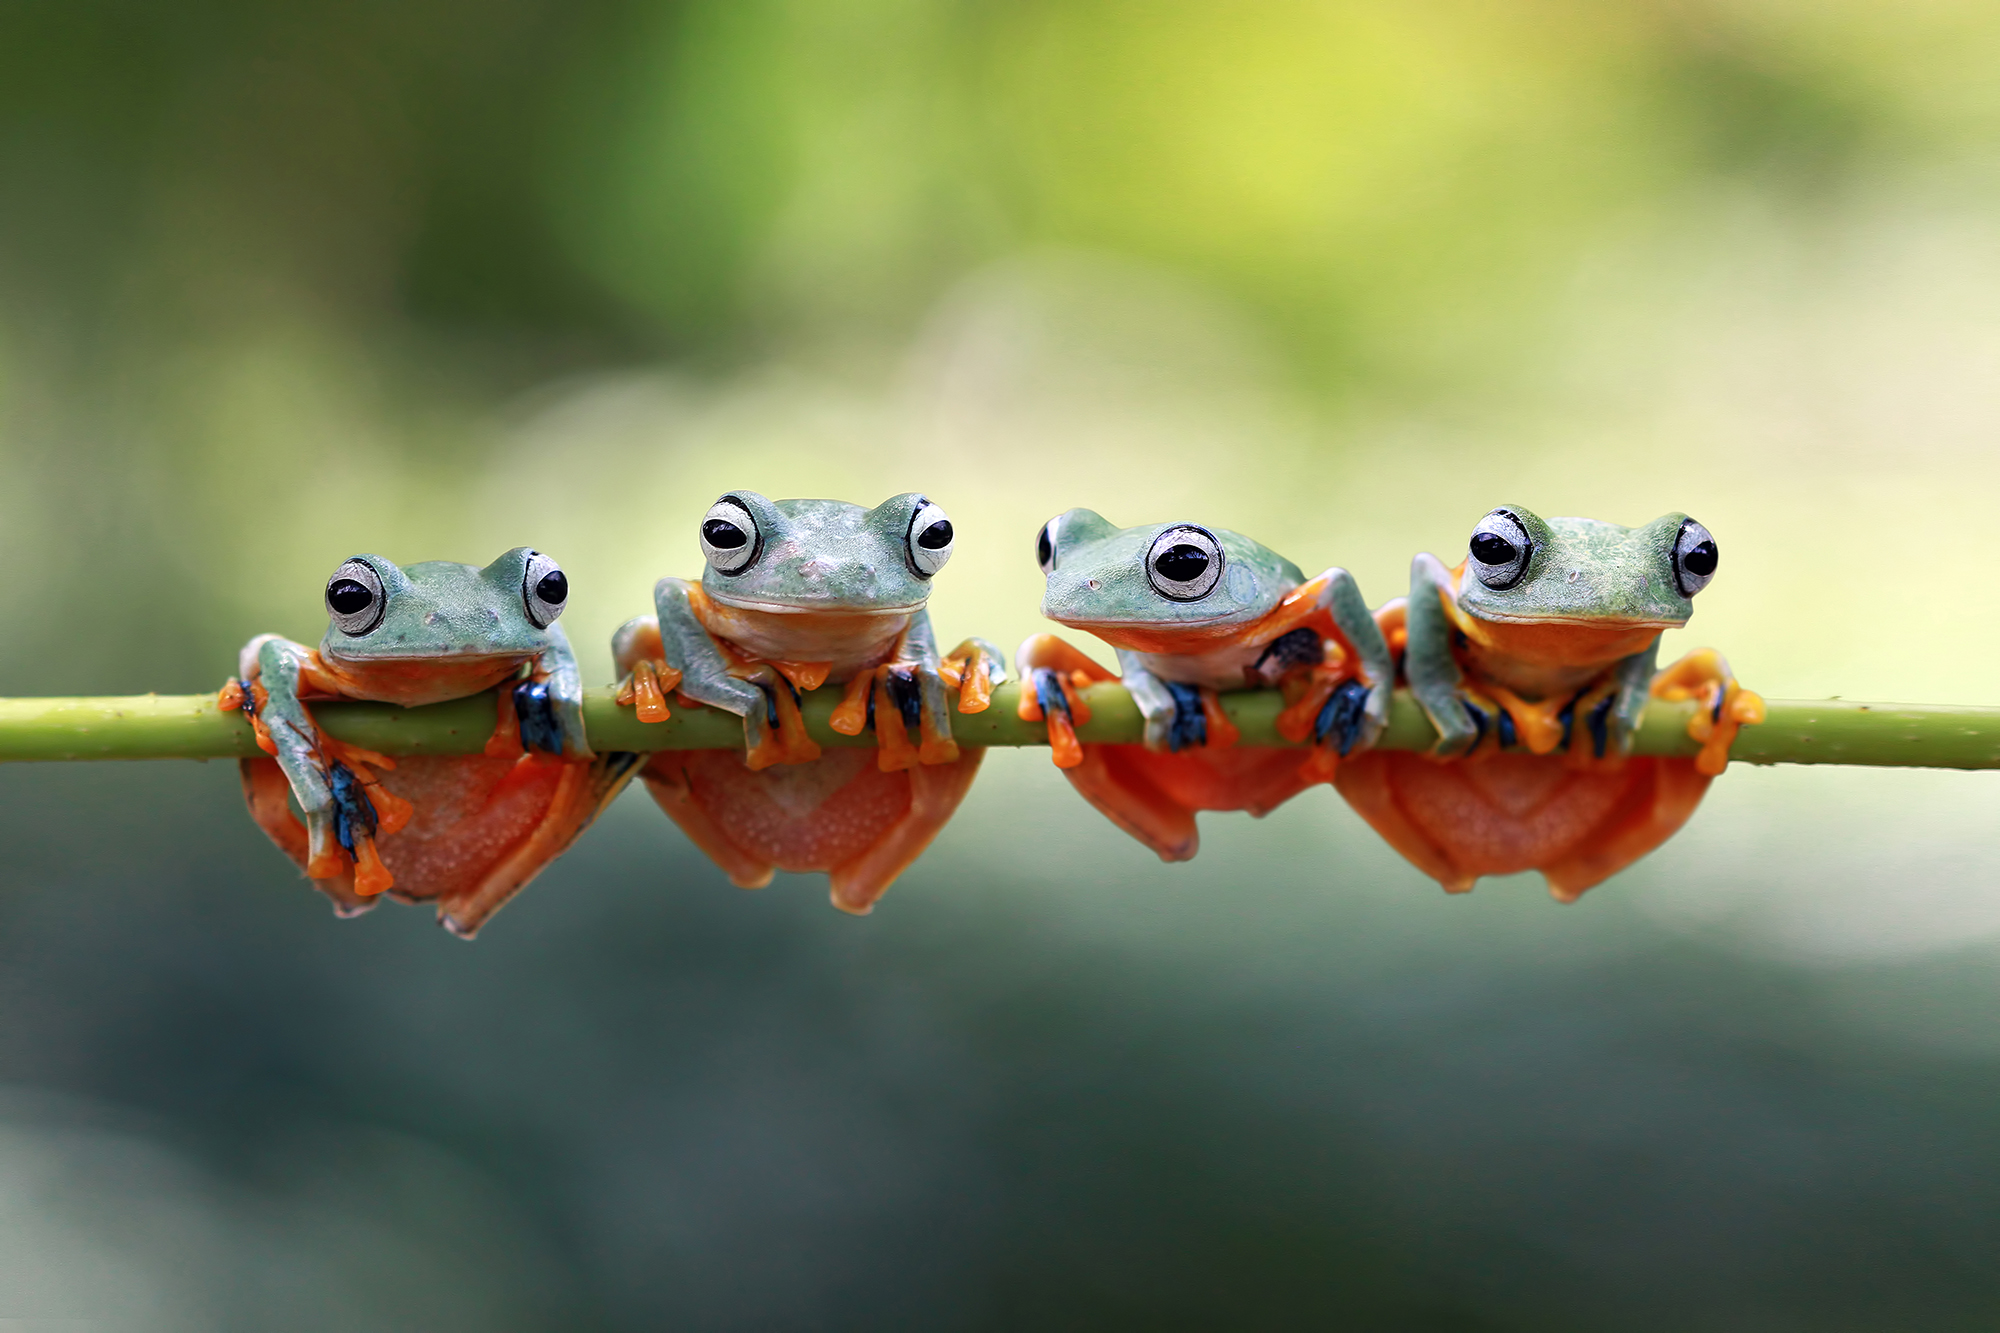 Four Javan tree frogs sitting on a plant, Indonesia